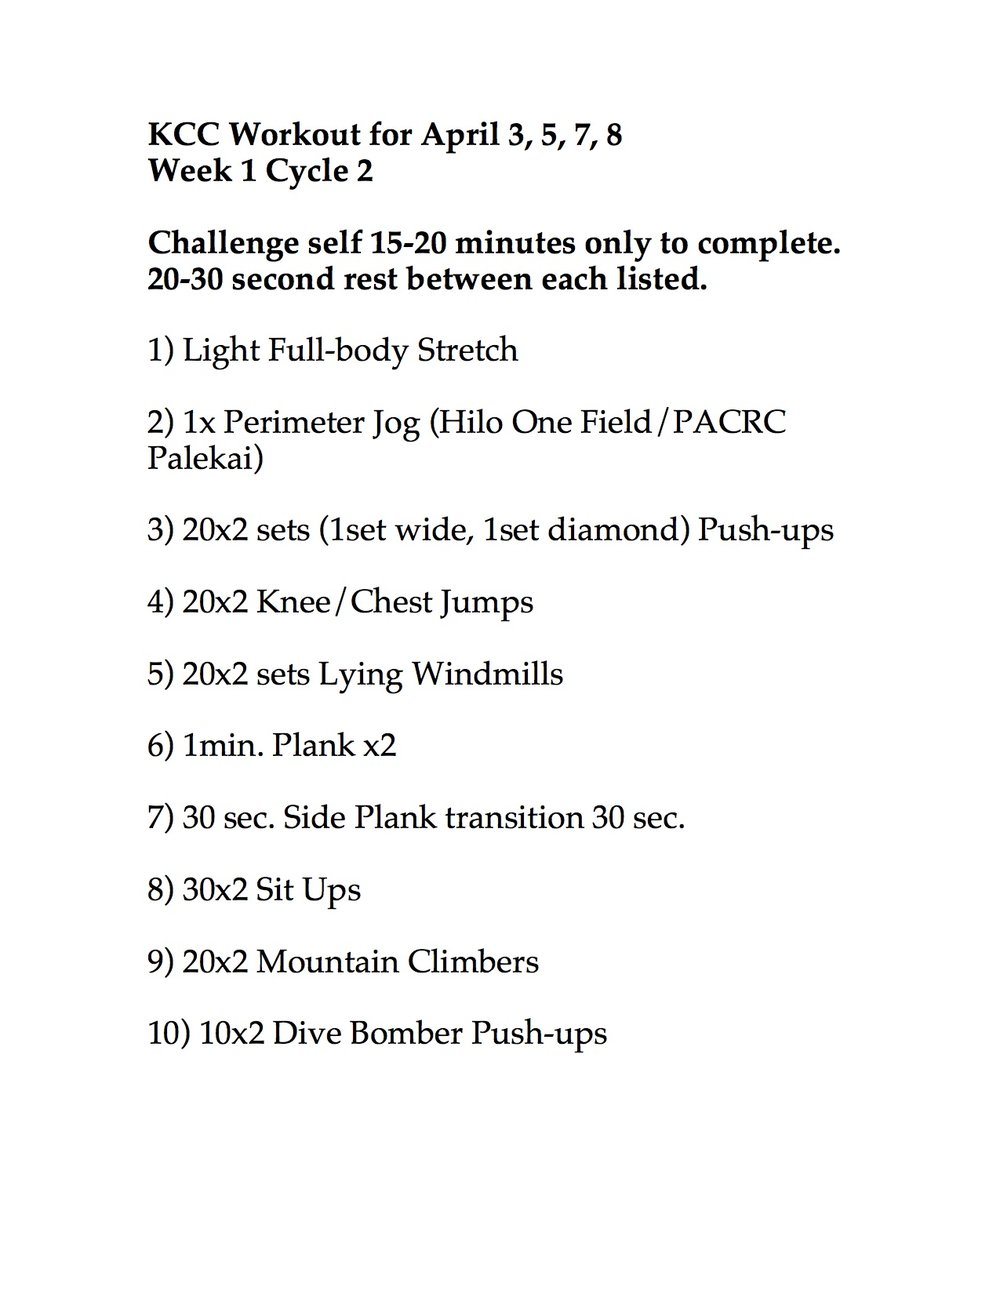 WEEK 2 CYCLE 2